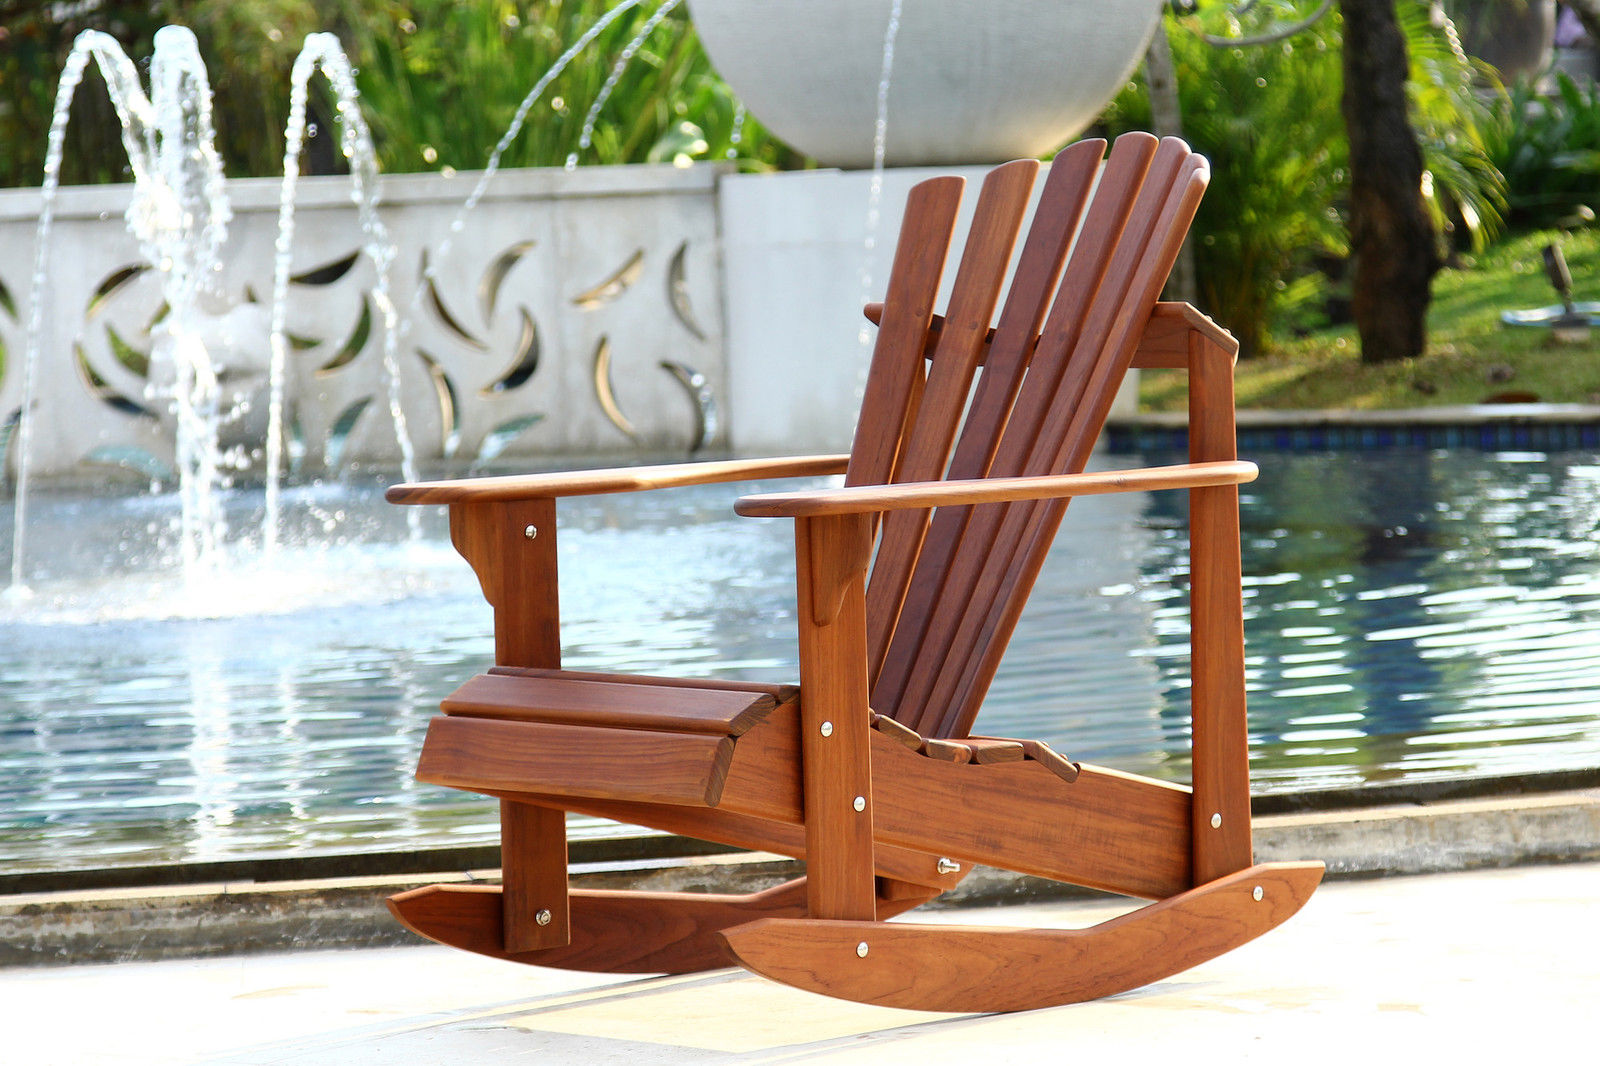 Brown Rocking Teak Adirondack Chairs For Outdoor Patio Furniture Ideas